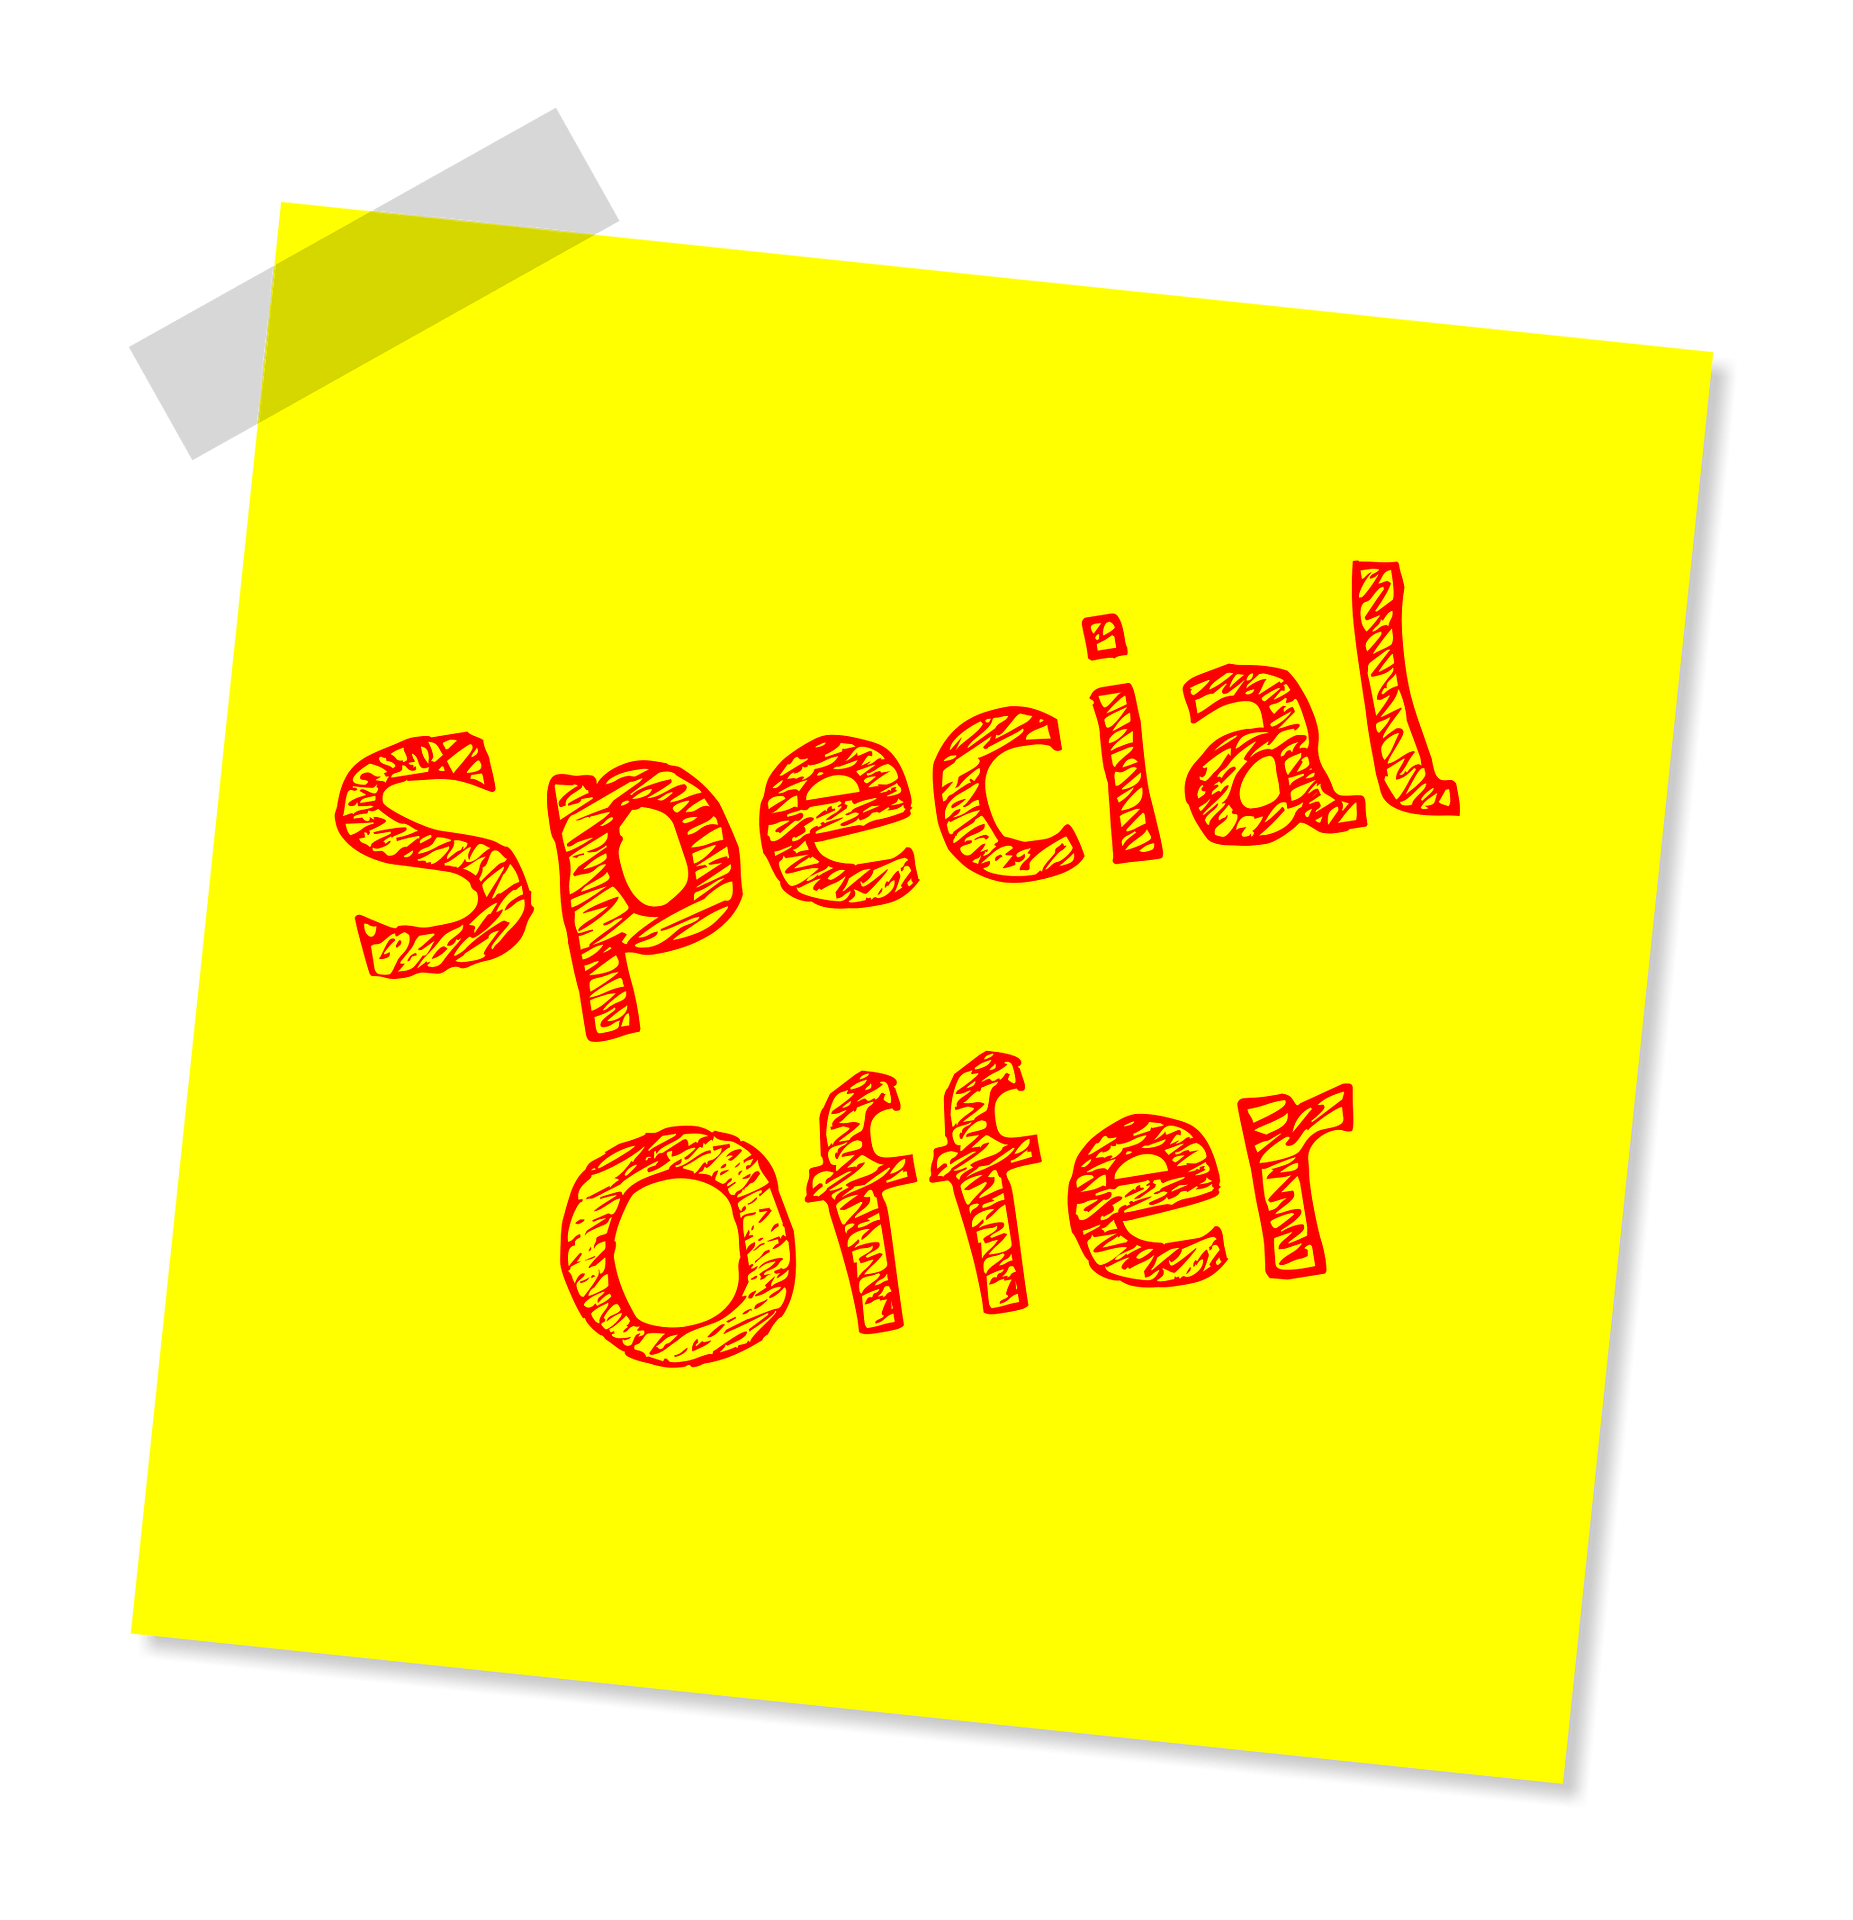 A yellow sticky note having the words *Special offer* written on it in red color.